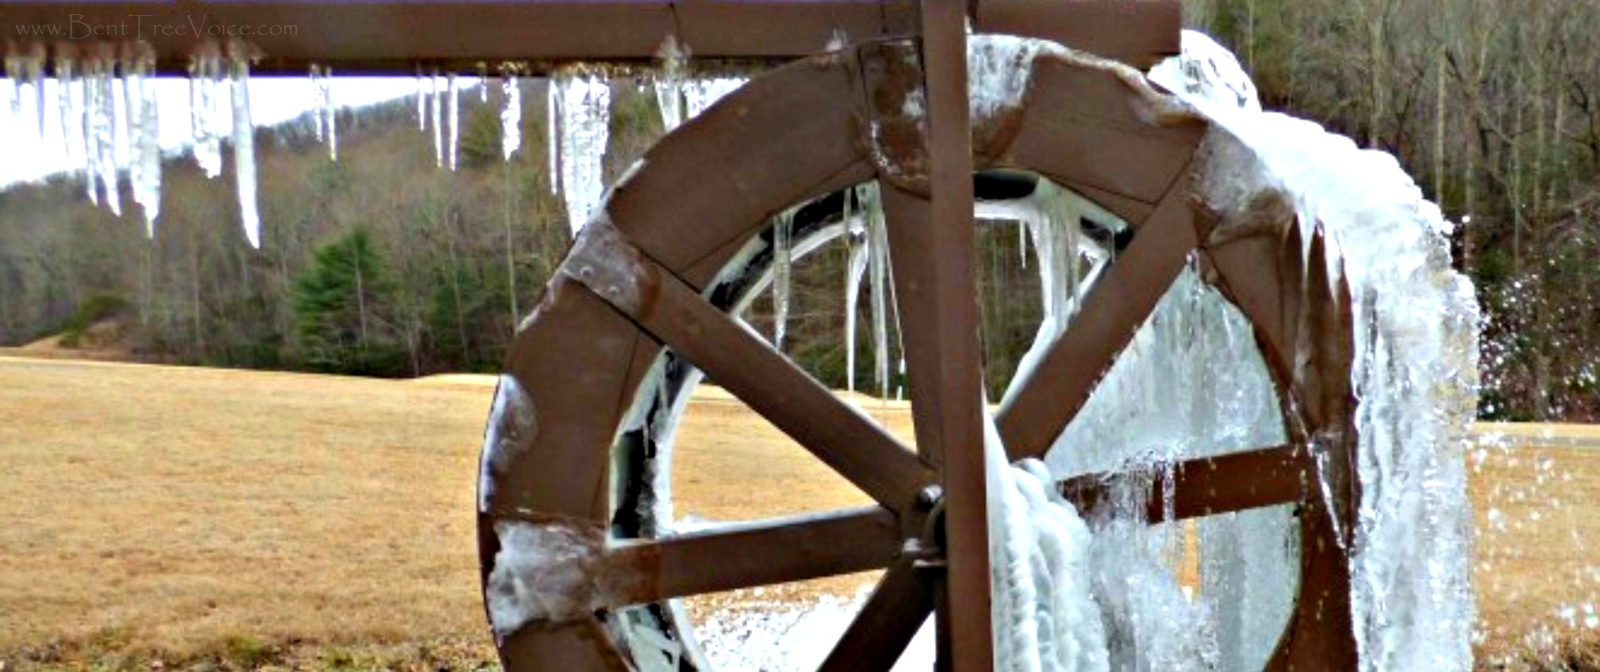 Icy water wheel on Hole 3 (from a previous year's Ice Breaker Tournament)